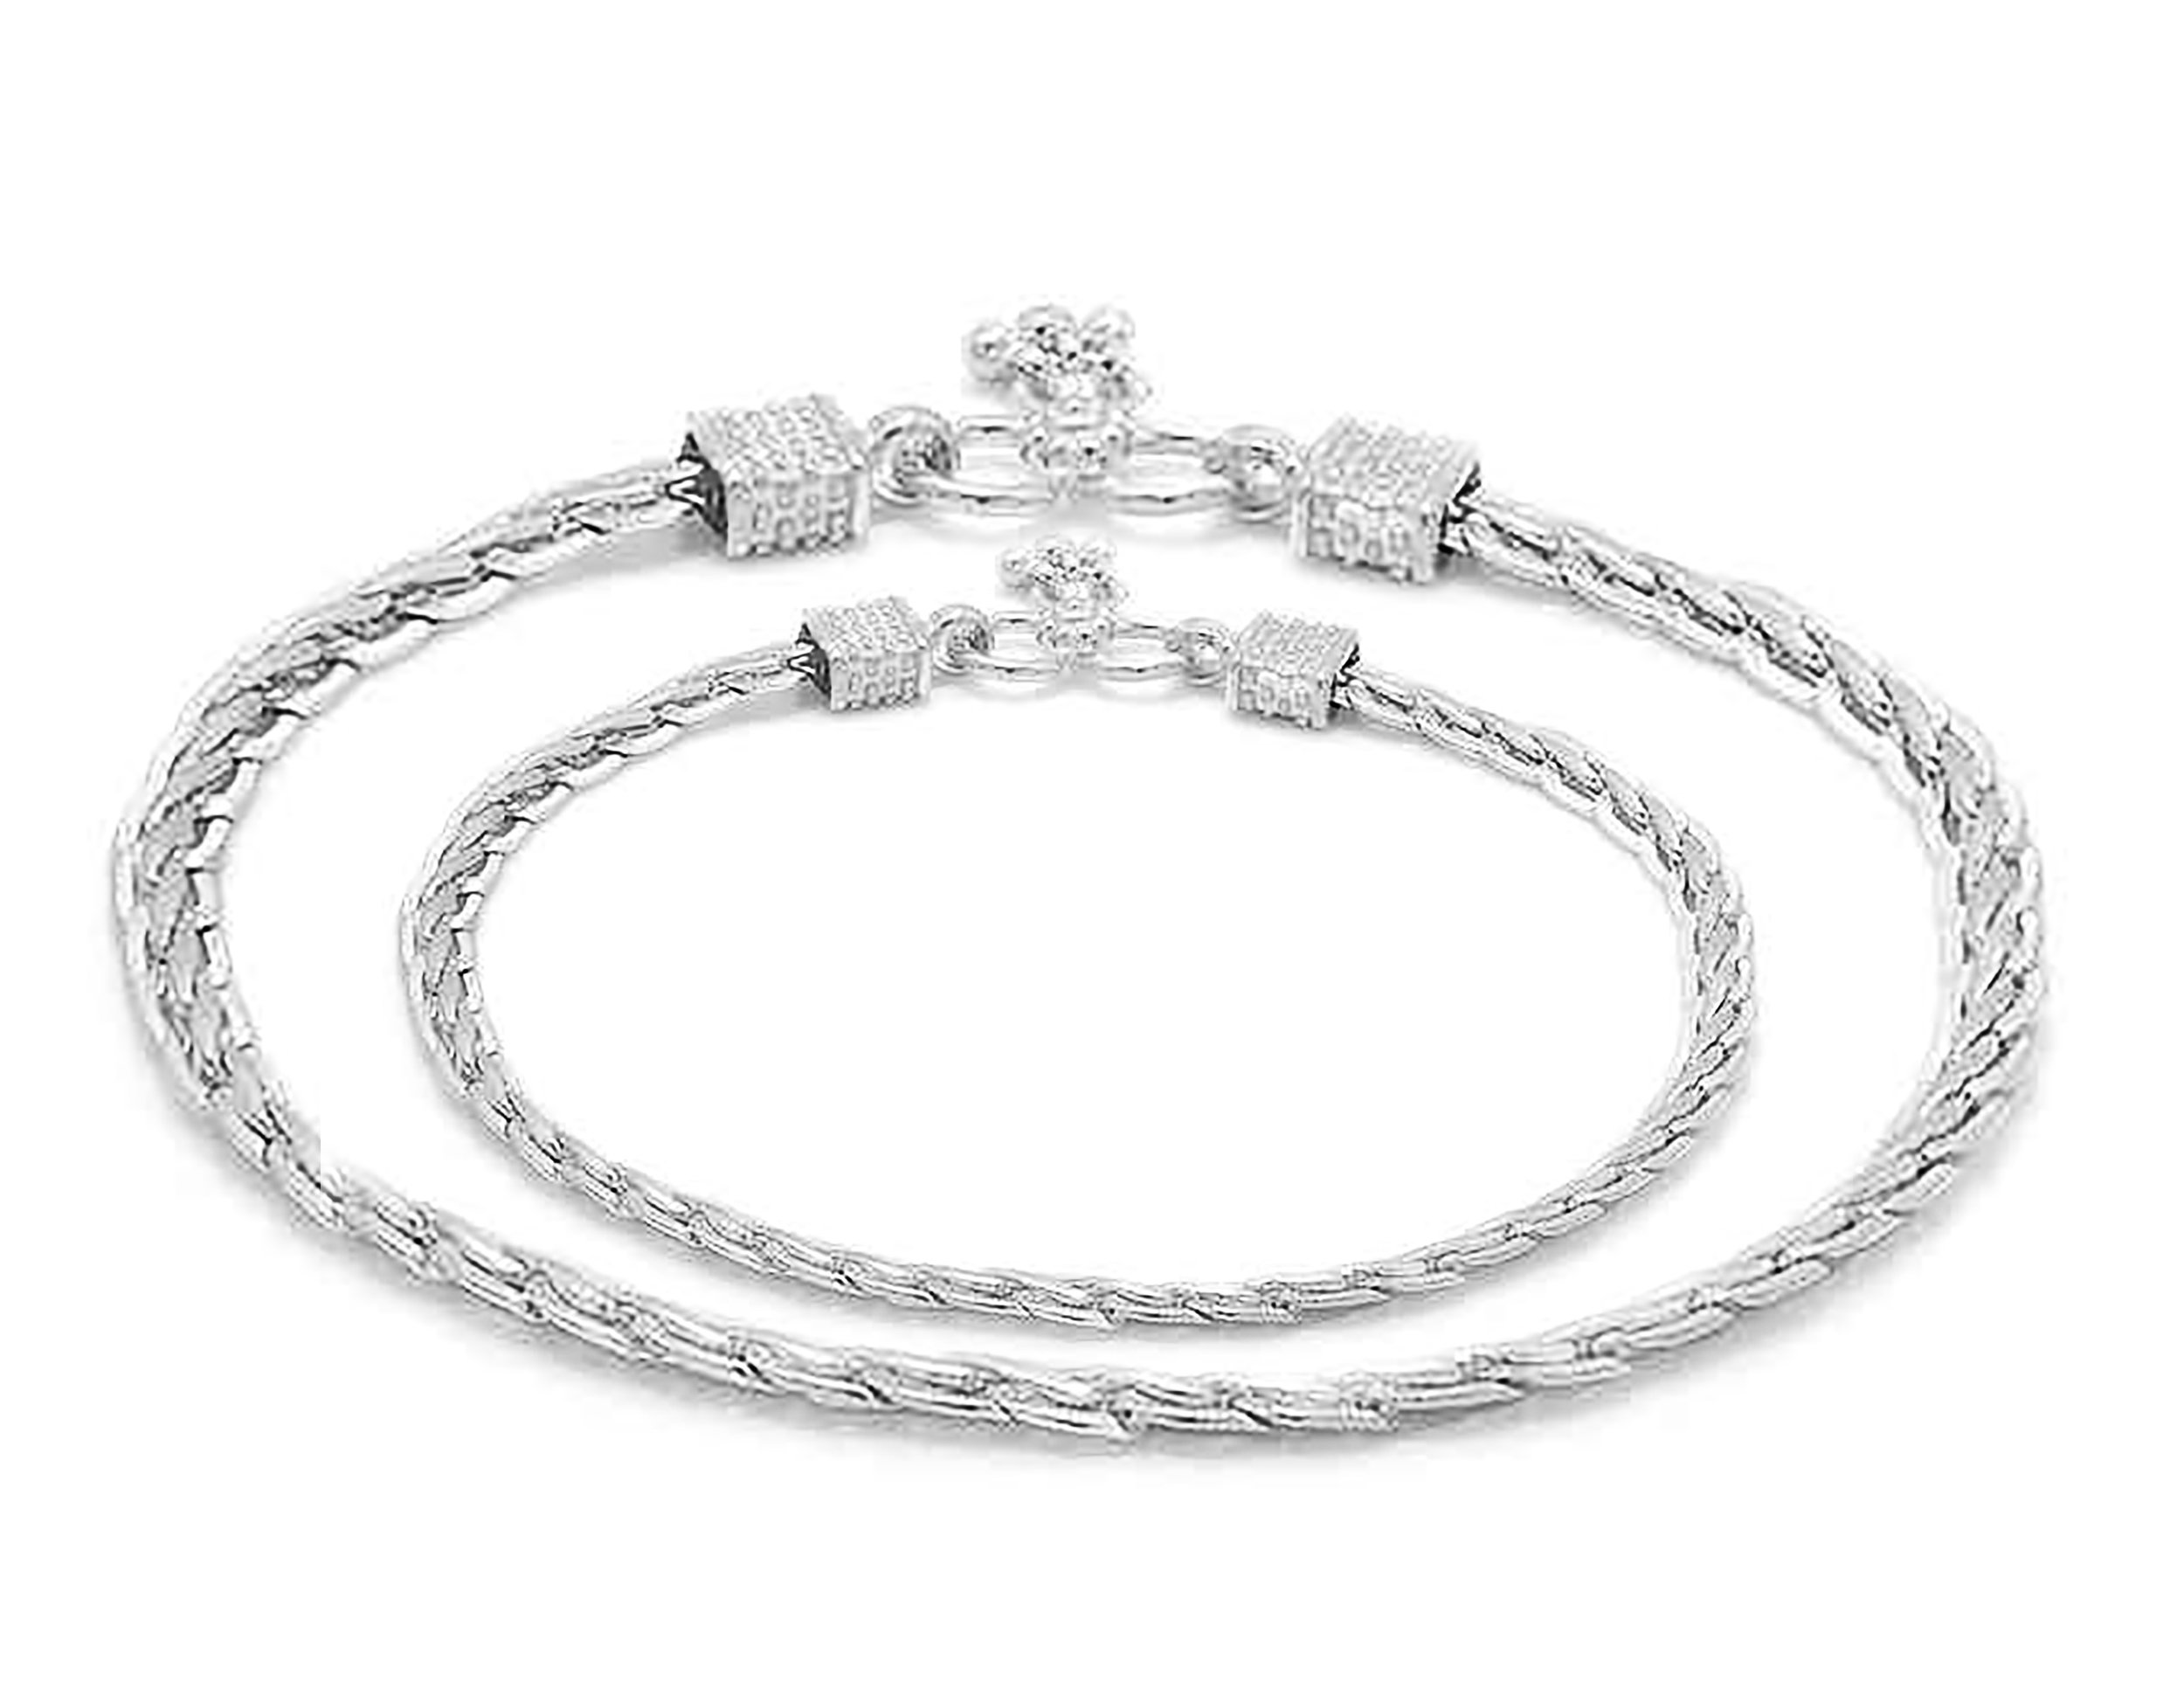 D&D Crafts Sterling Silver Link Anklets For Girls, Women